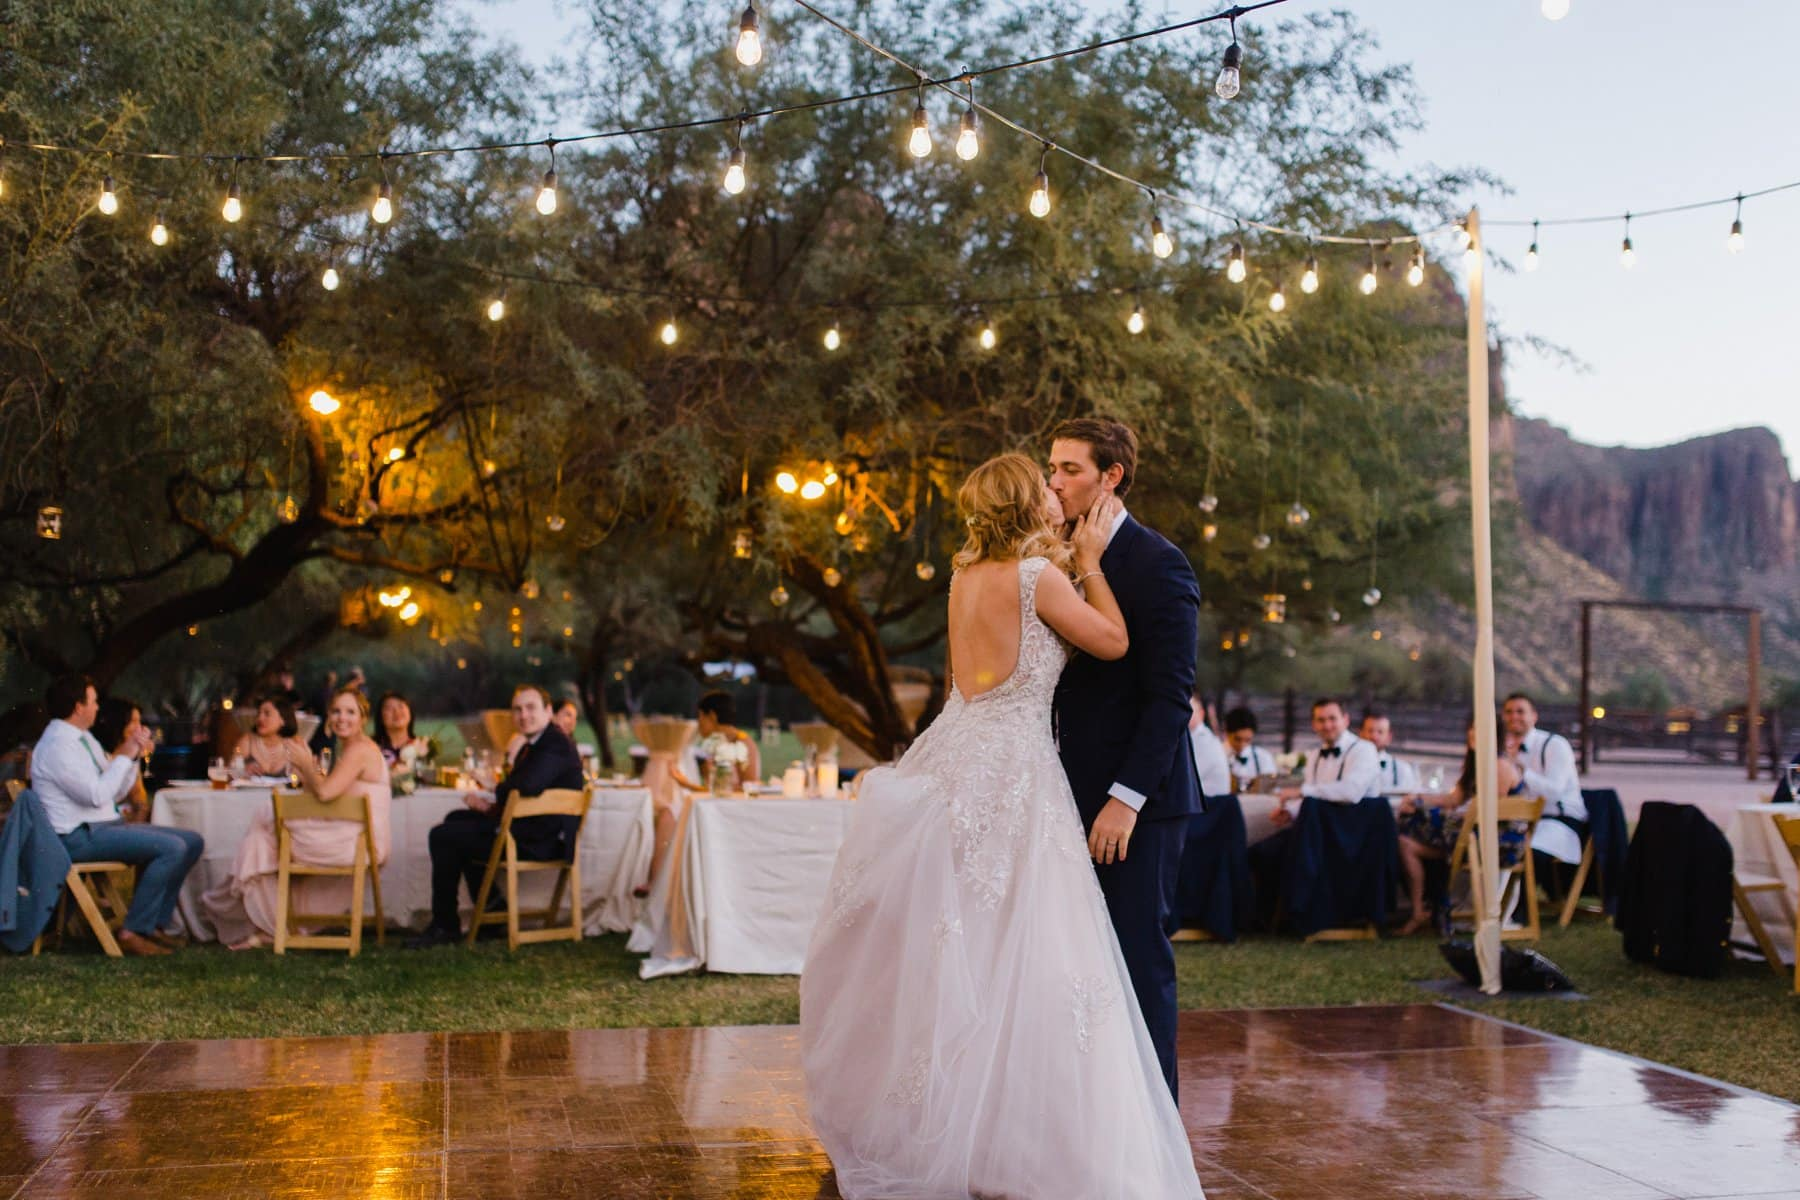 Saguaro Lake Ranch wedding photos outdoor reception venue Arizona